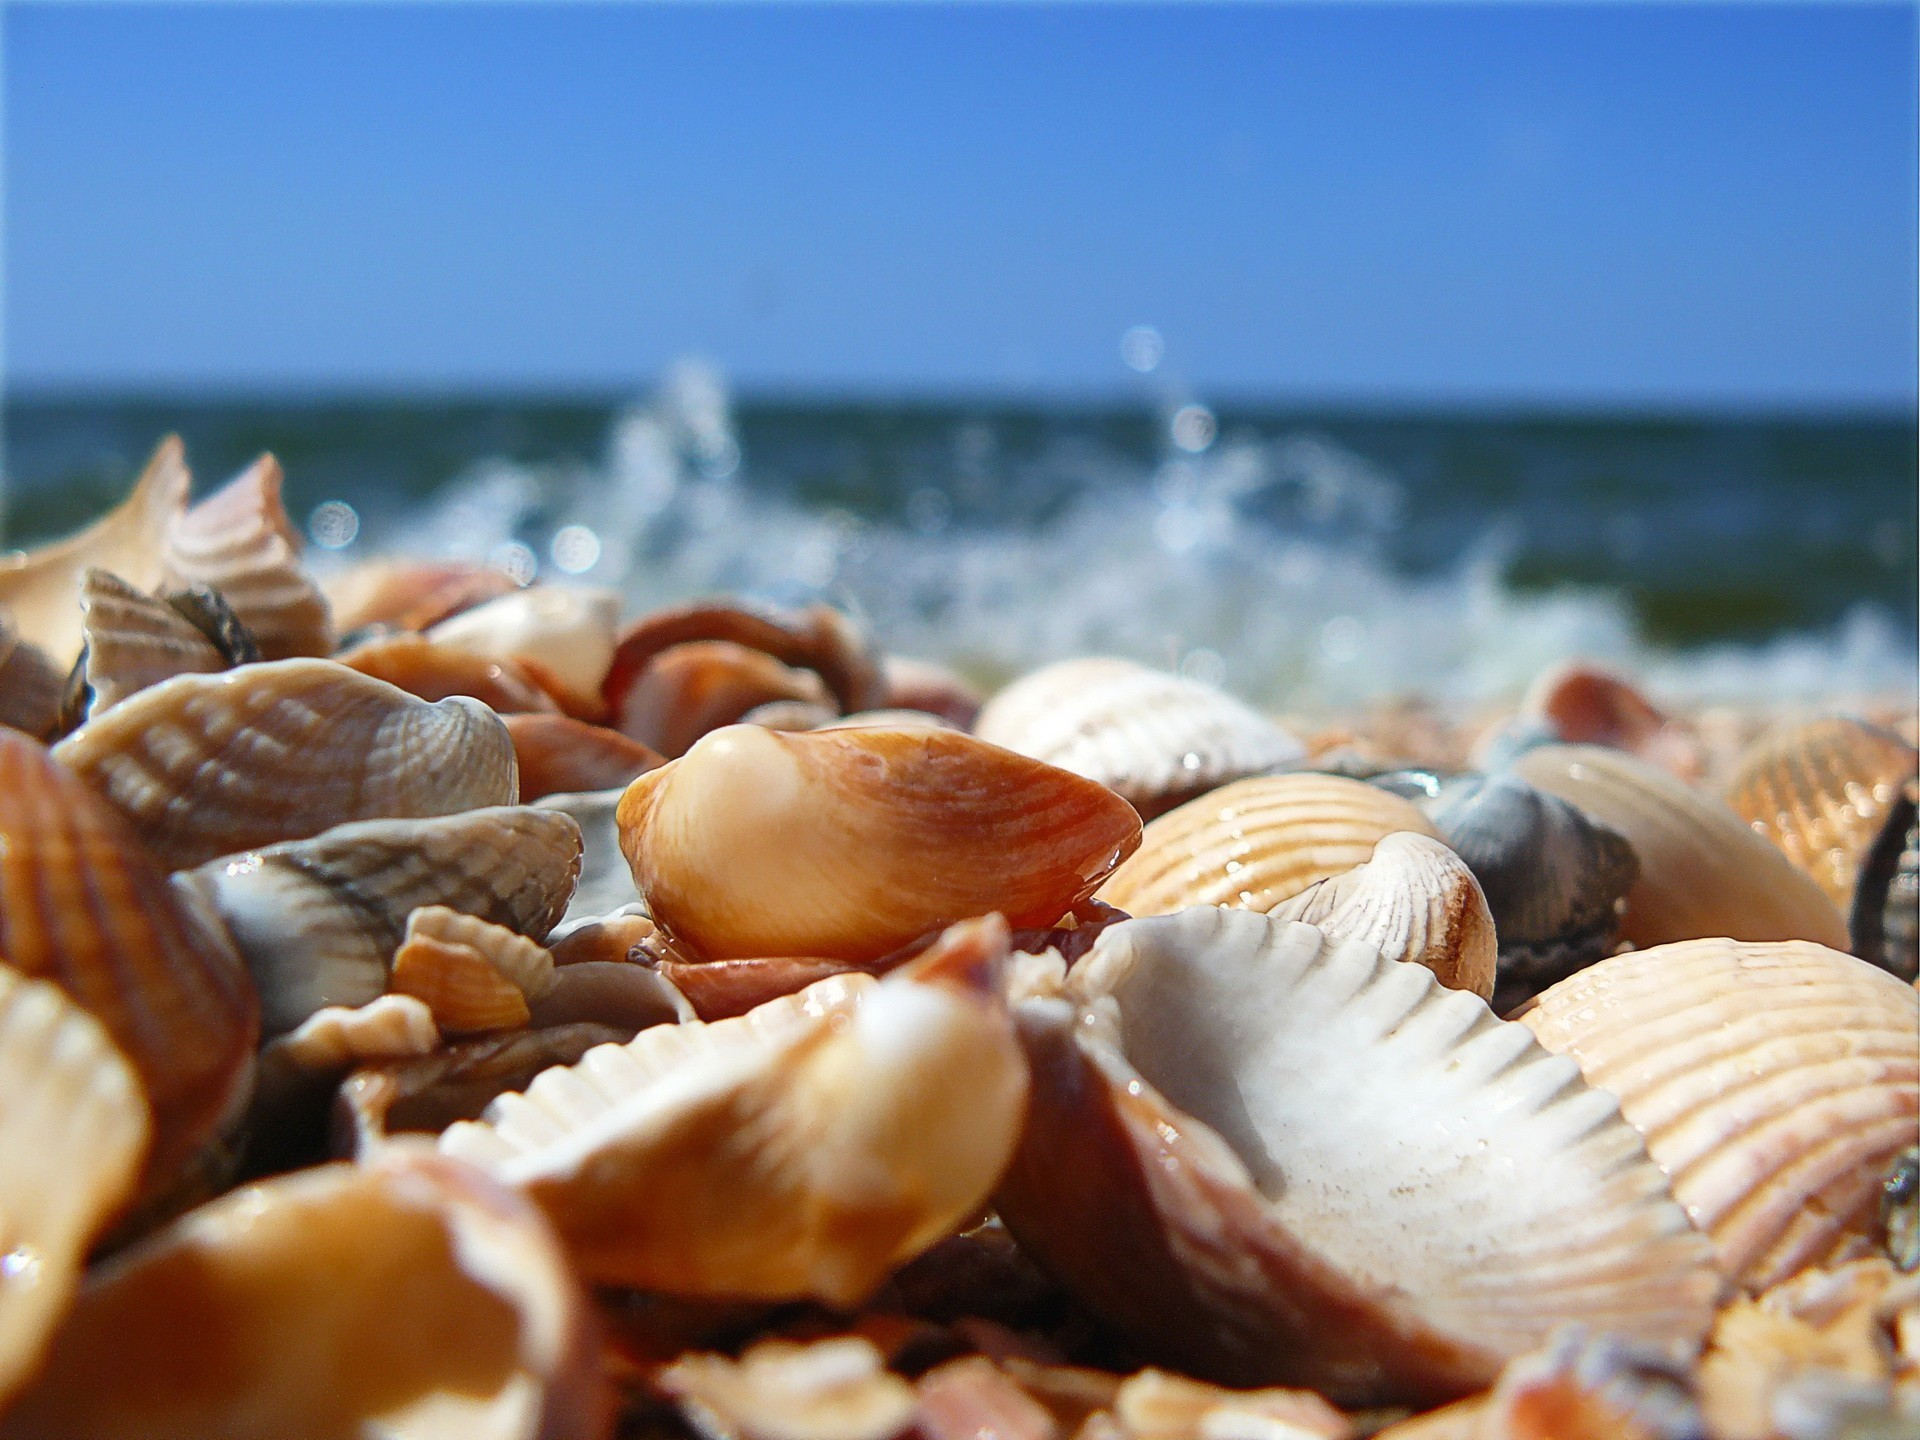 click to free download the wallpaper--Pic of Nature Landscape, Sea Shells Under the Blue Sky, Freshly Picked from the Sea